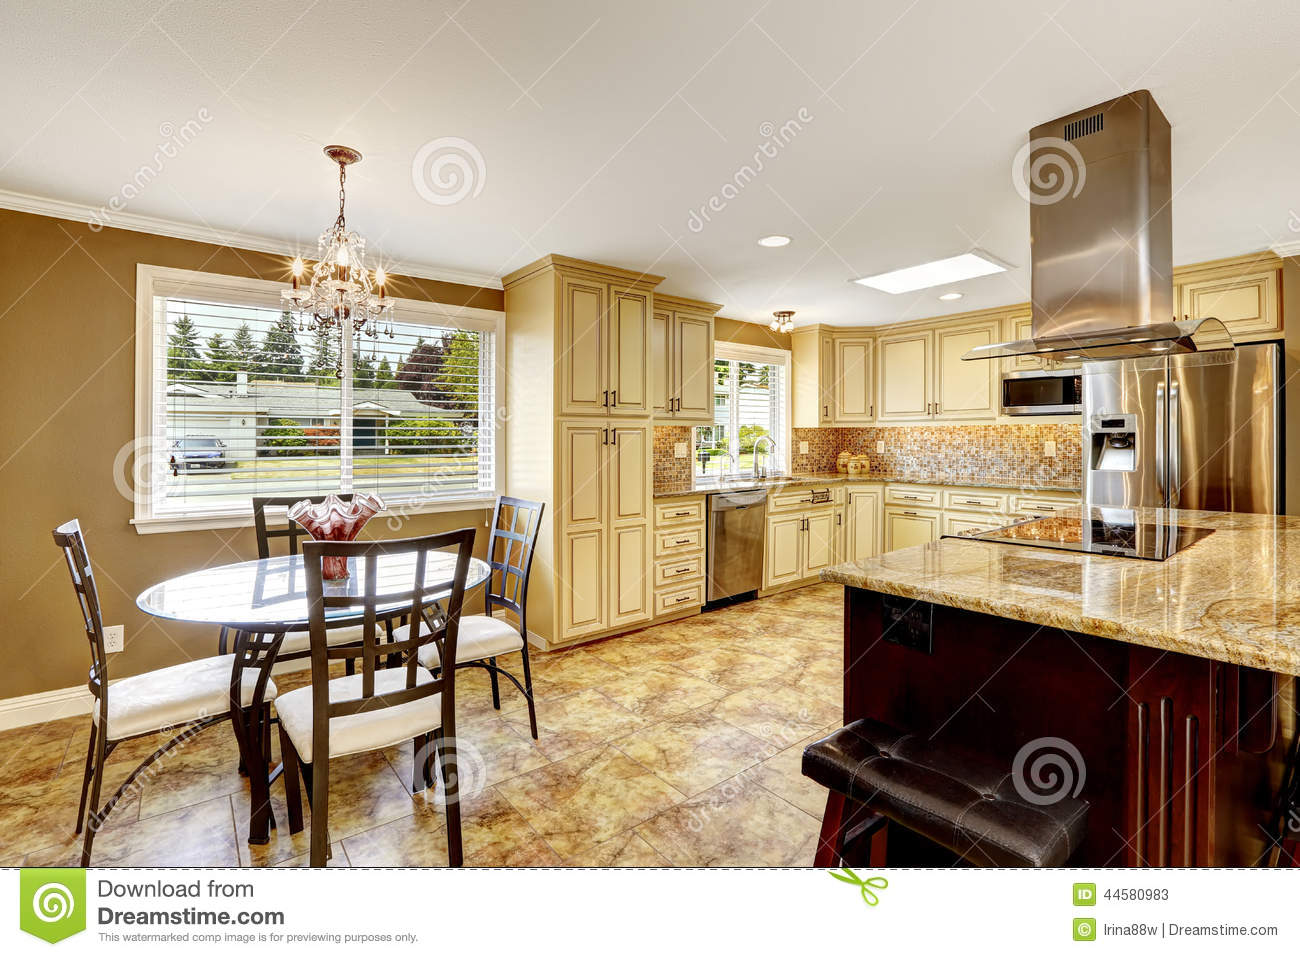 Kitchen Interior With Dining Table Set And Island Stock Photo Image 44580983